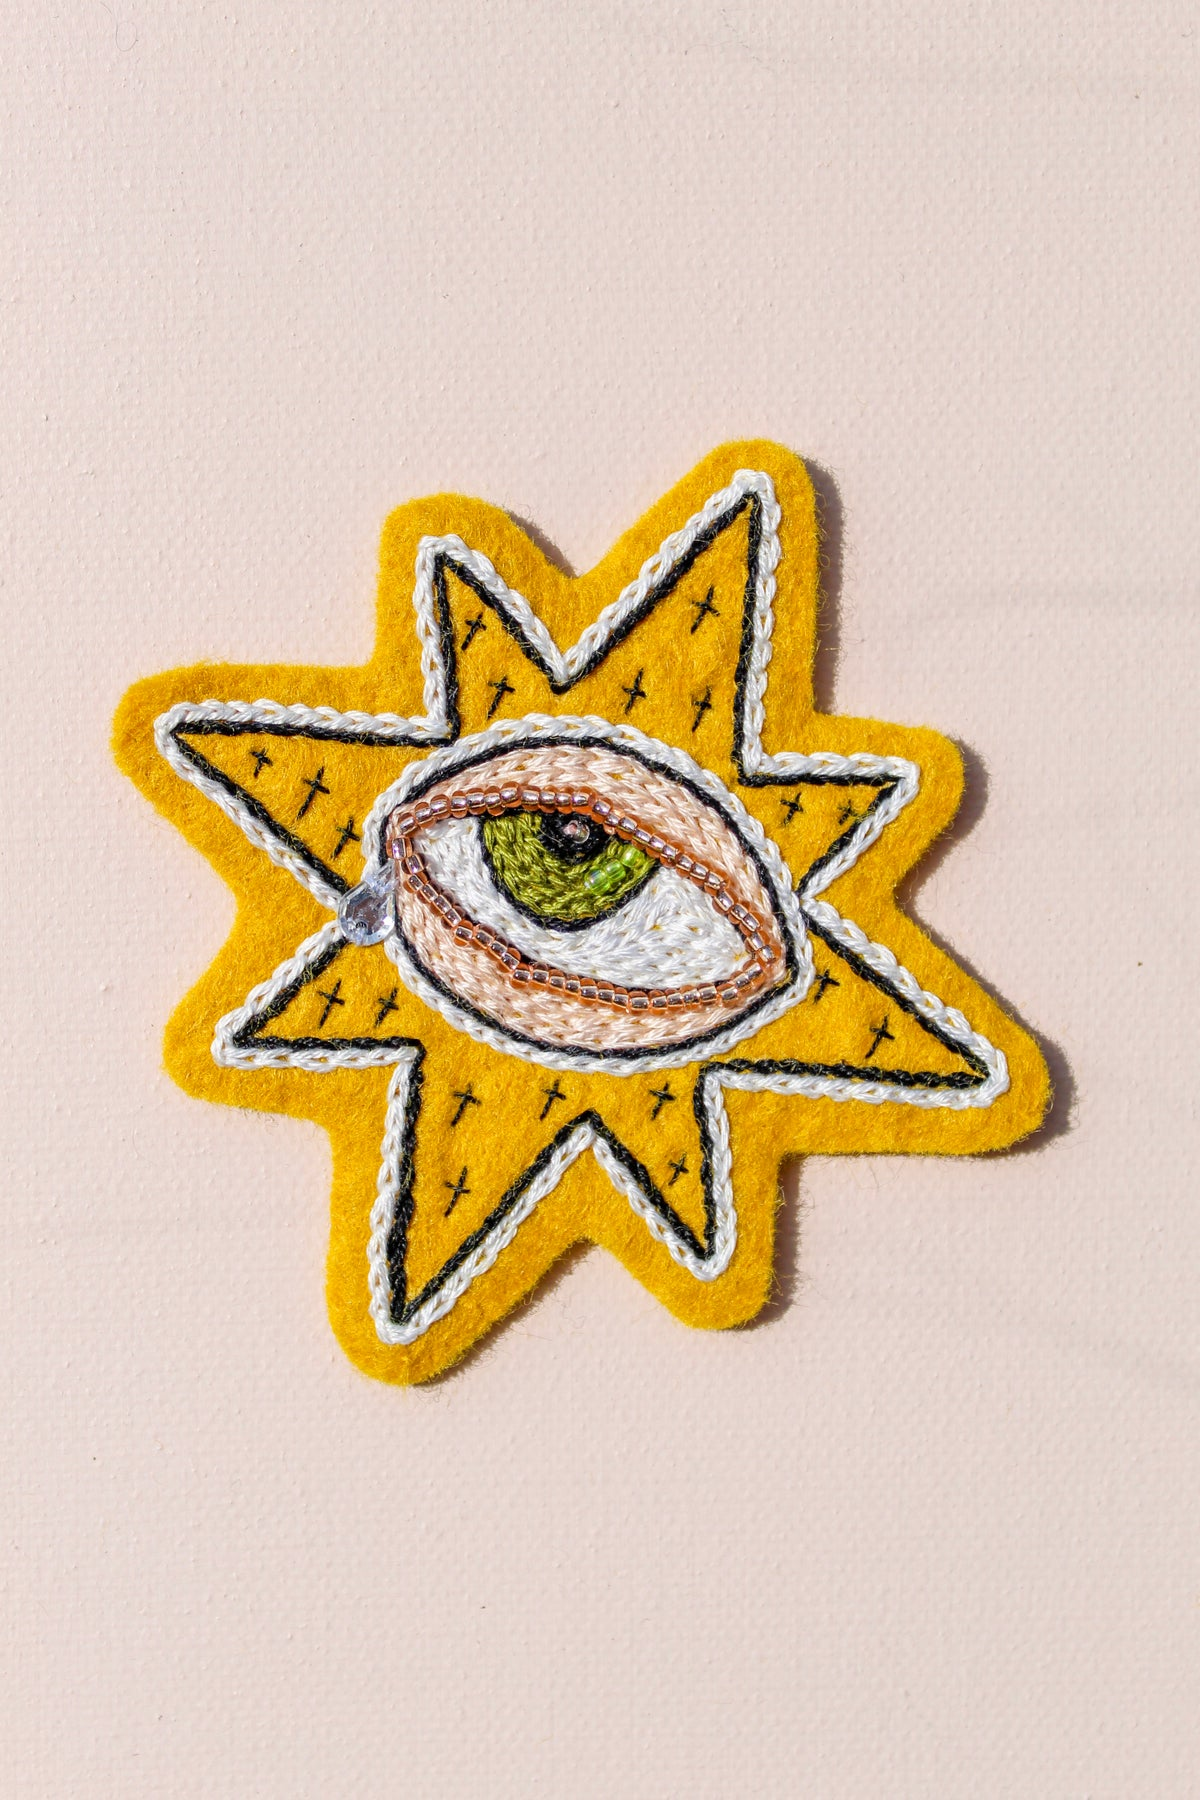 Image of Weepy Starry Eye Embroidery Pattern (PDF Document)